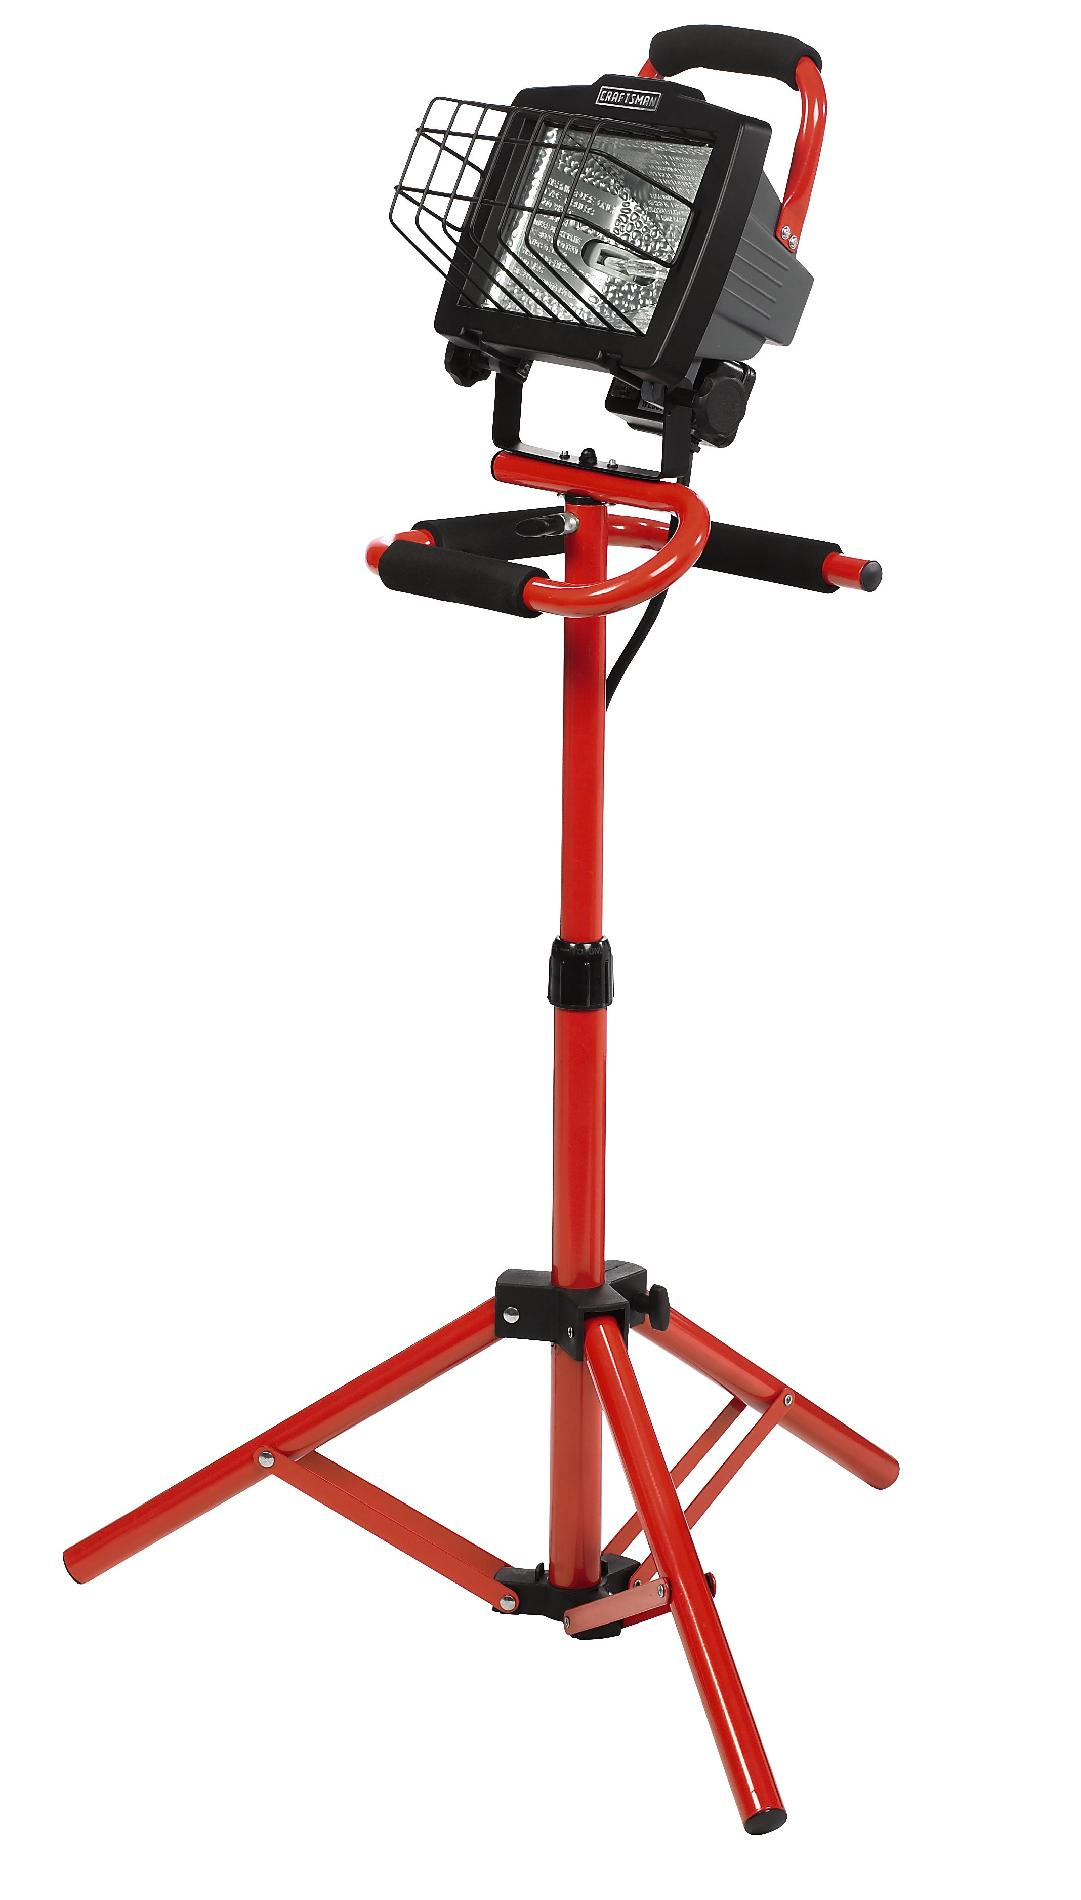 Craftsman 500-Watt Tripod Light with Portable Stand